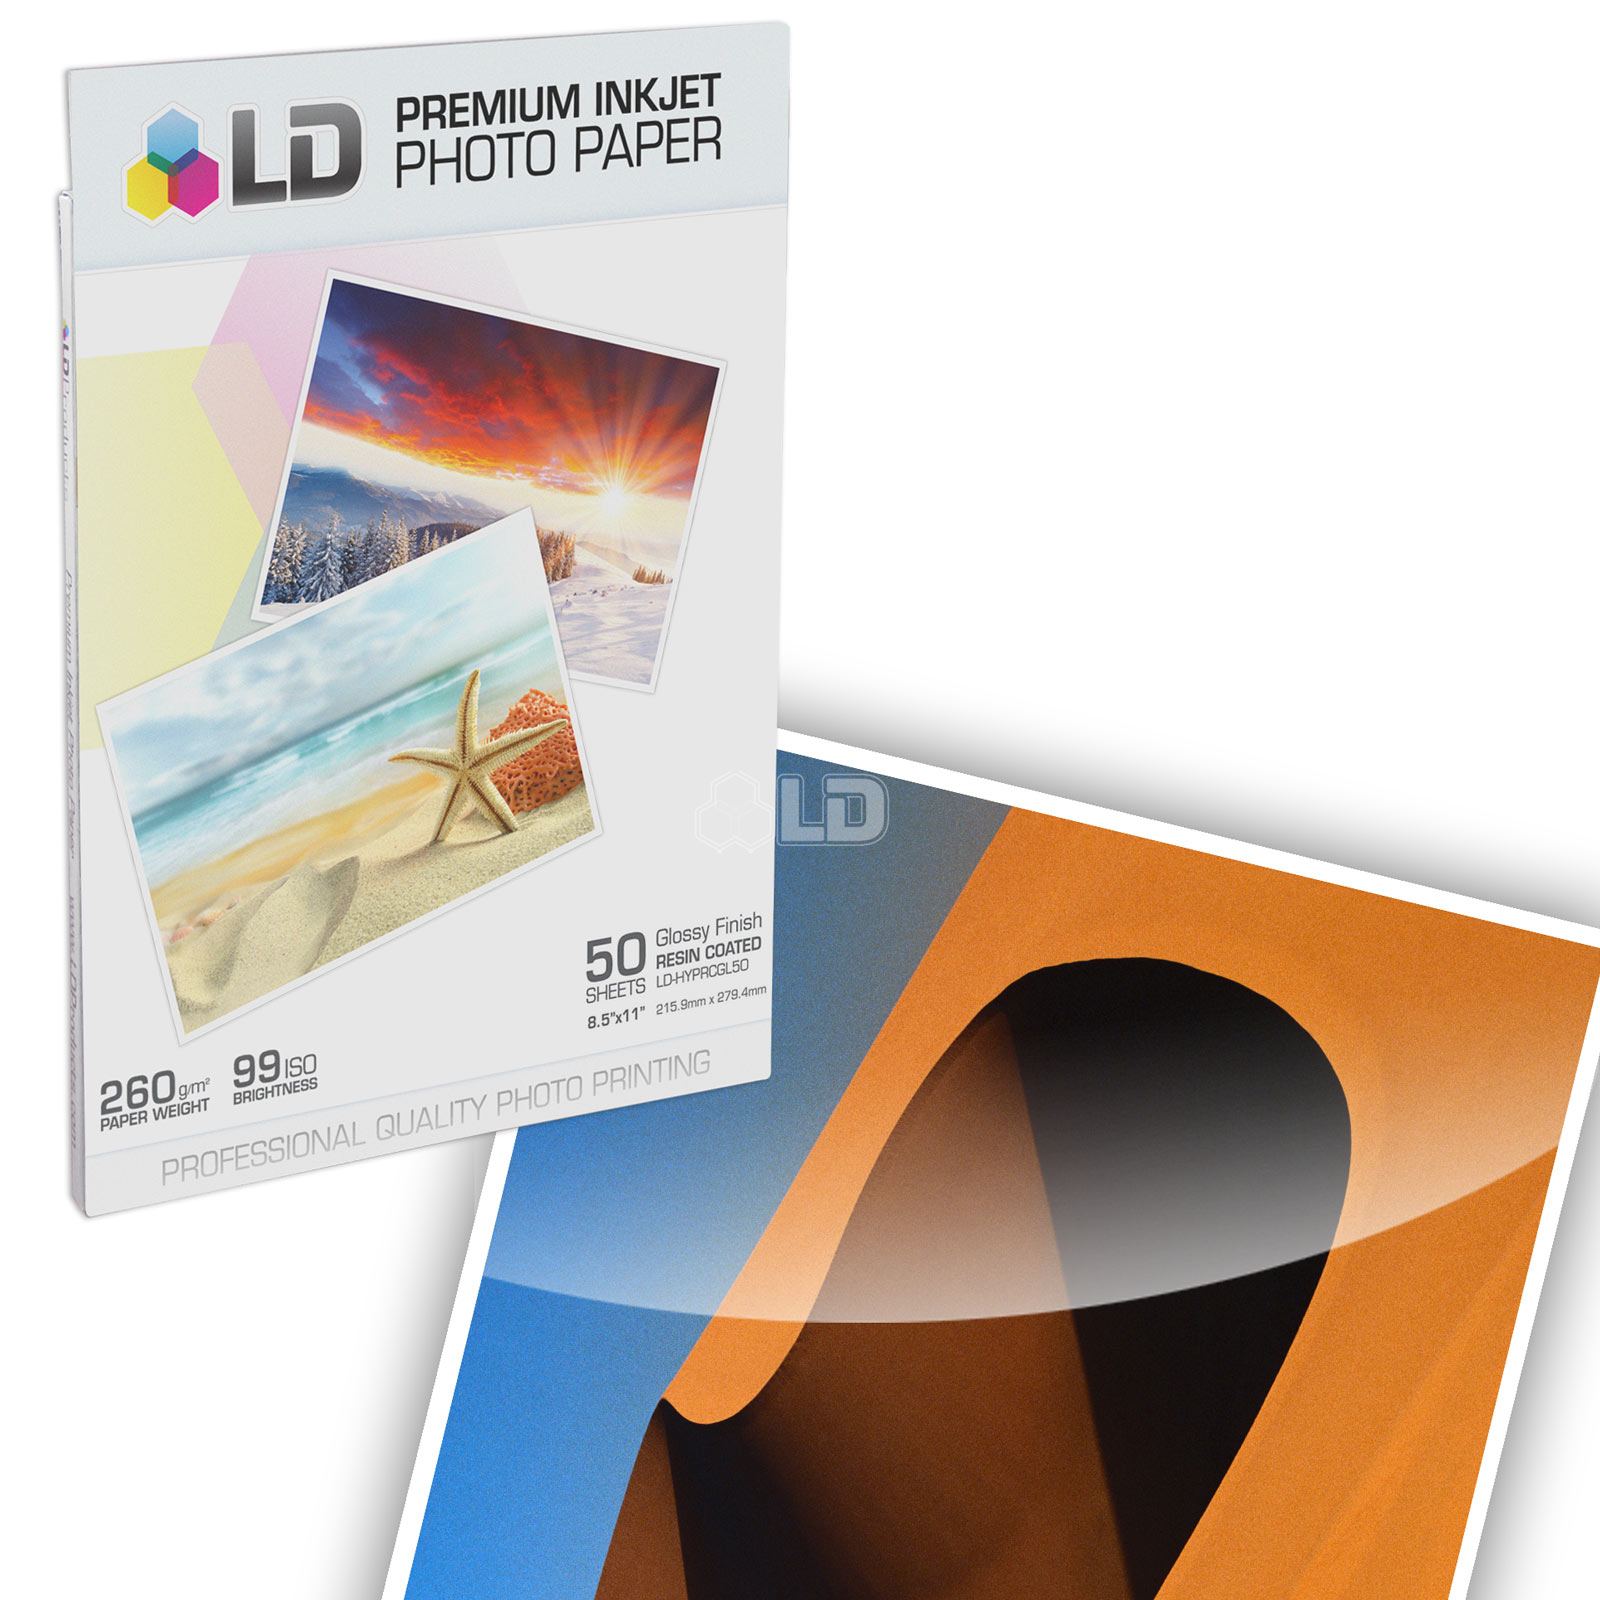 LD  Premium Glossy Inkjet Photo Paper (8.5X11) 50 pack - Resin Coated